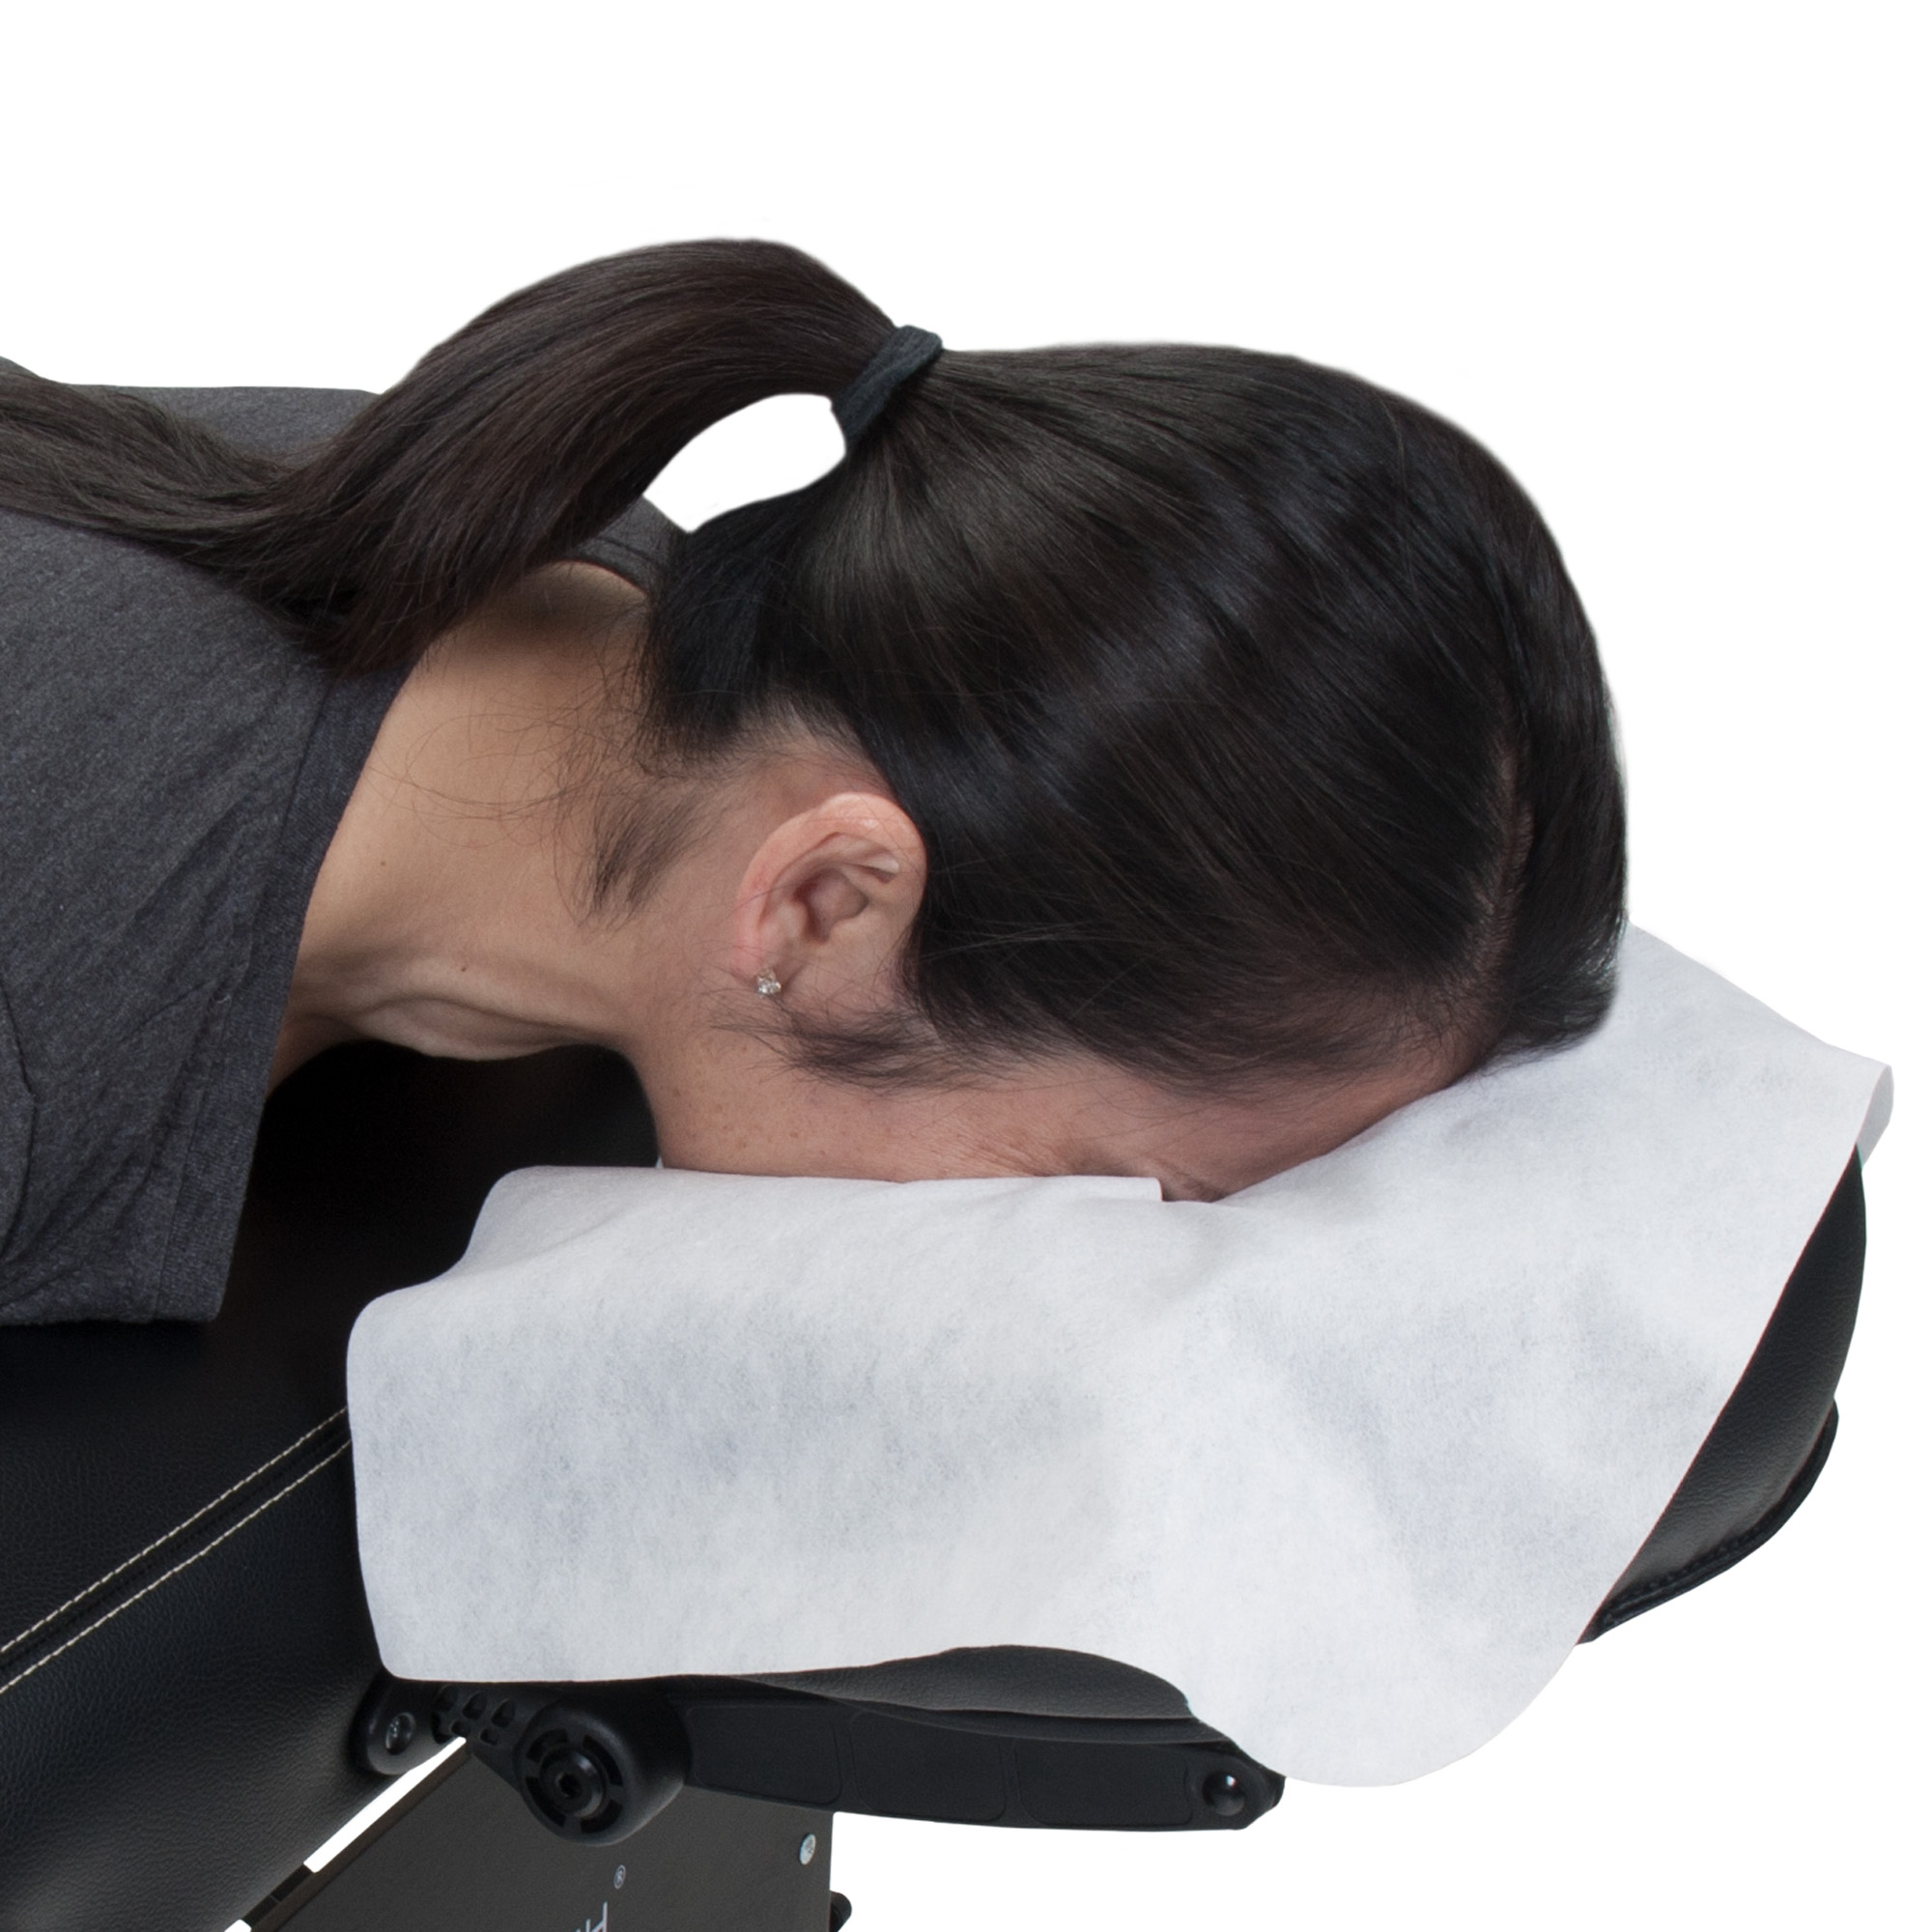 EARTHLITE Disposable Massage Headrest Cover – Medical-Grade, Ultra Soft, Luxurious, Non-Sticking Face Rest Cradle Covers (100count)